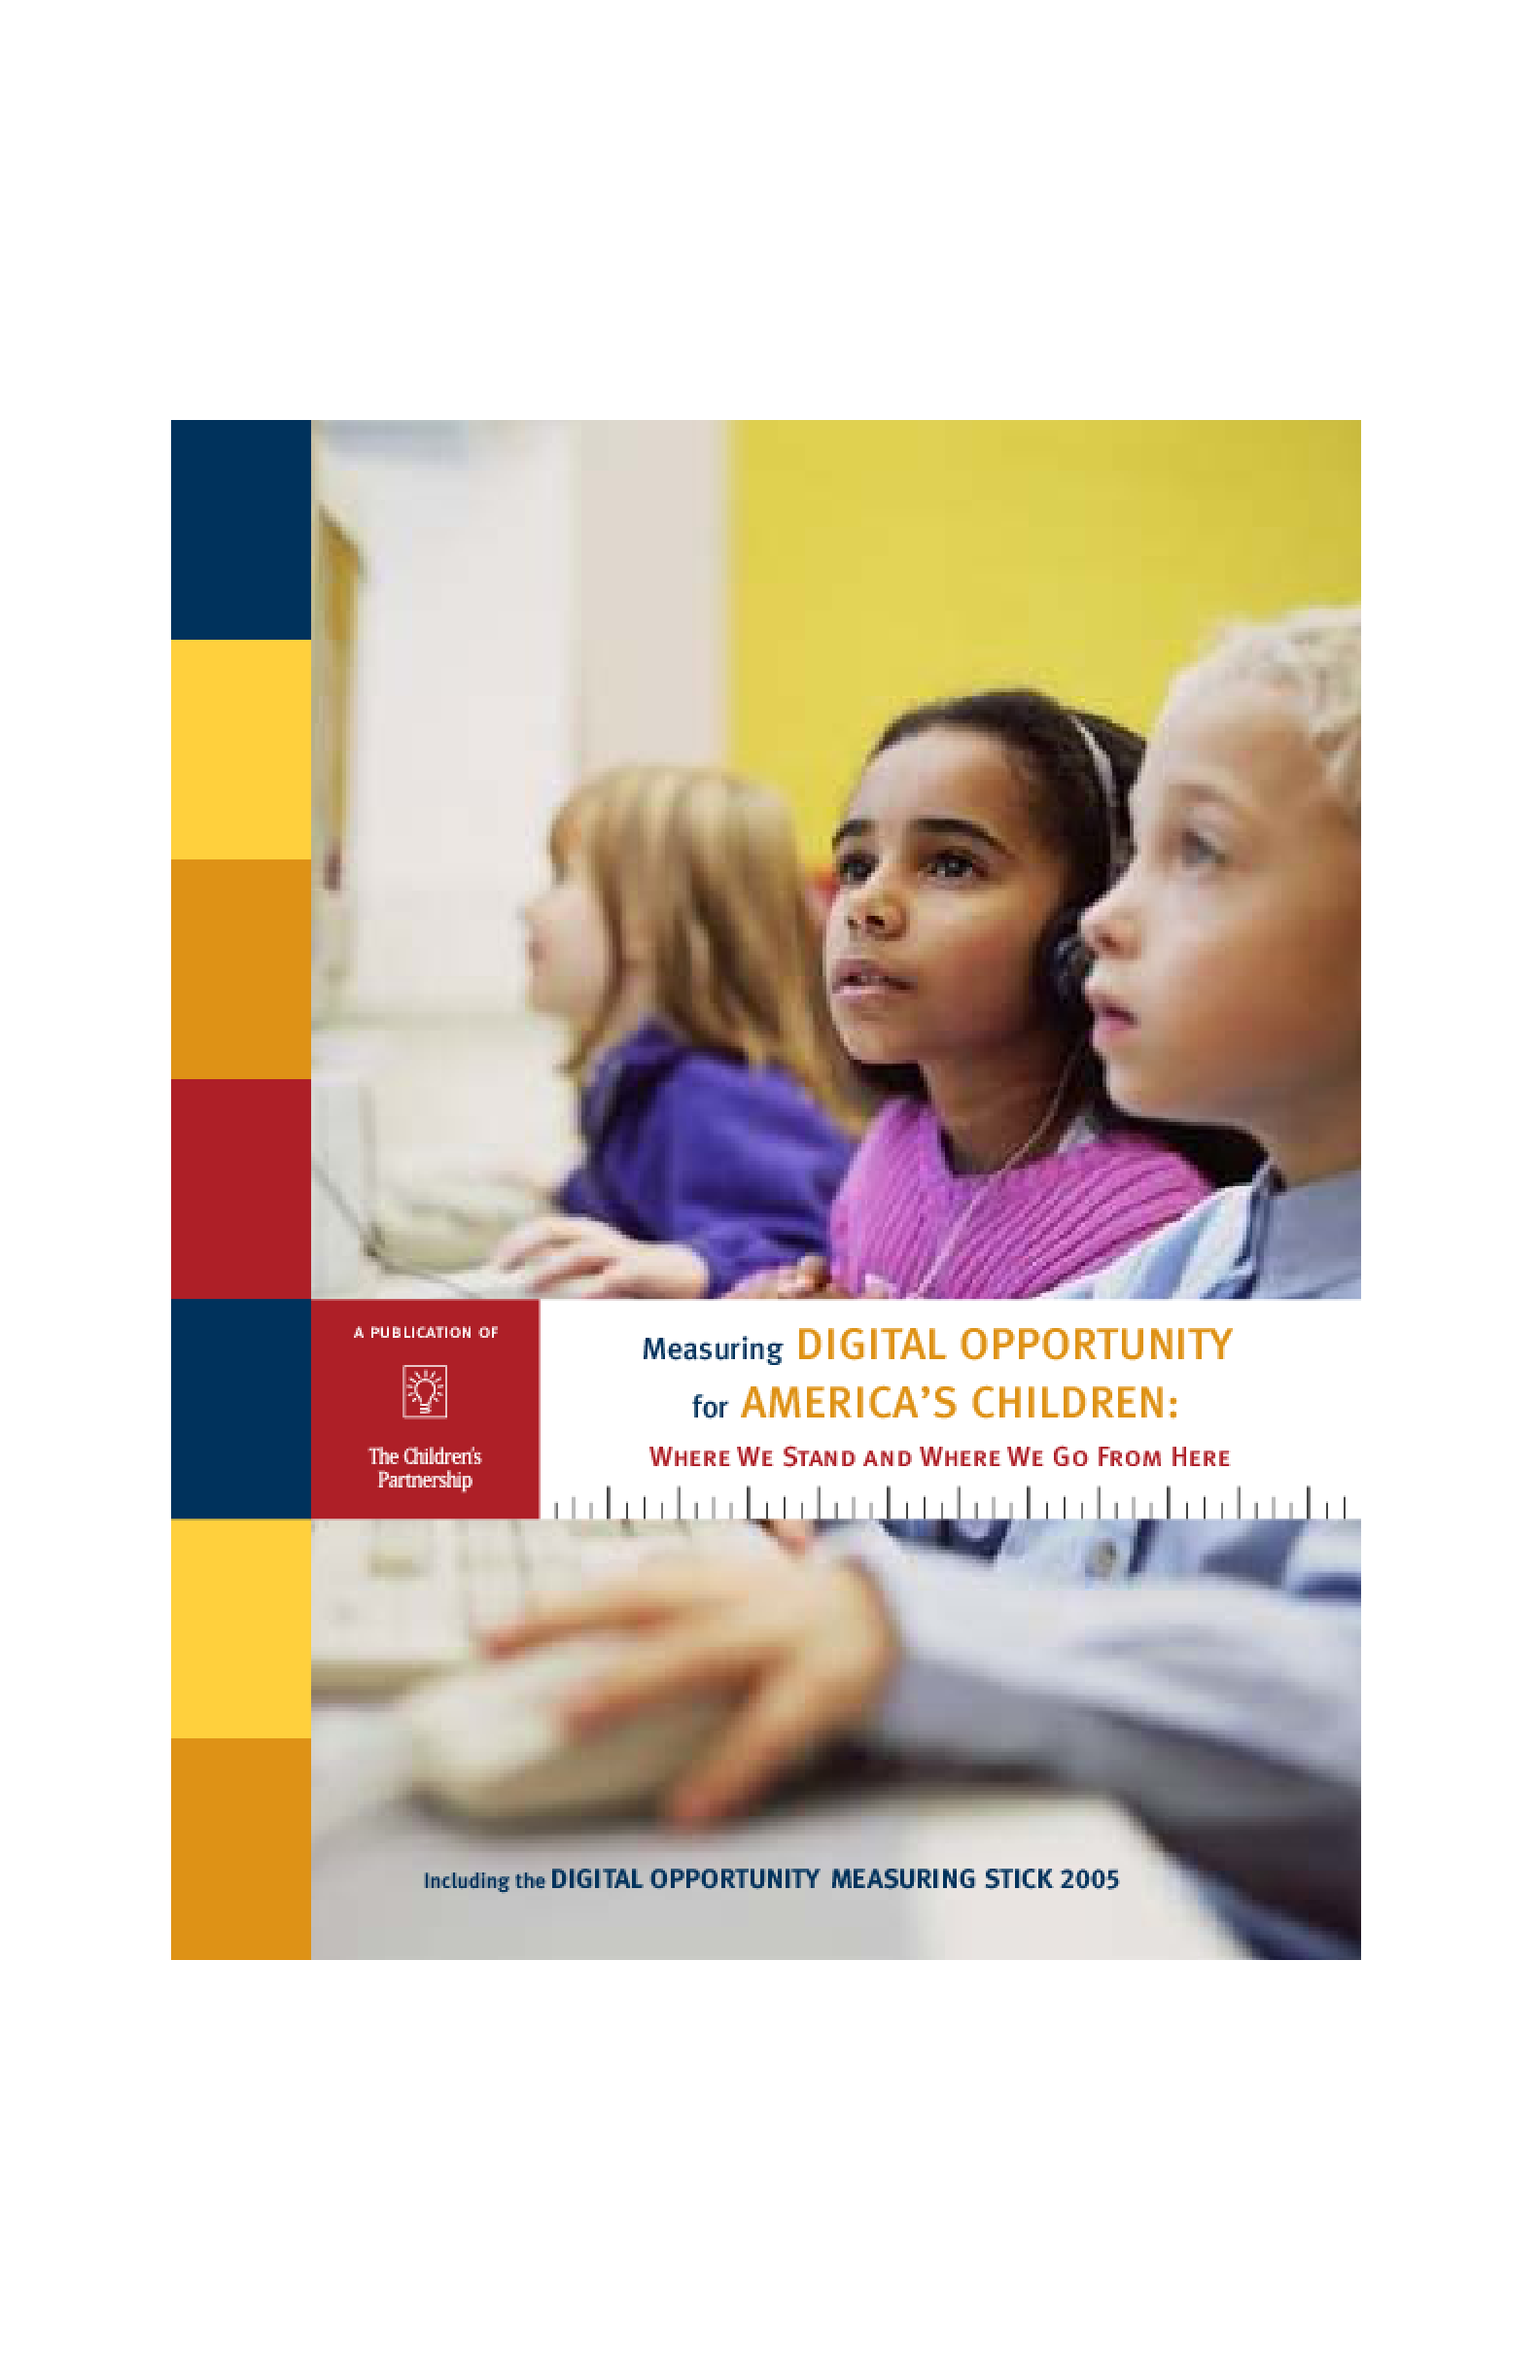 Measuring Digital Opportunity for America's Children: Where We Stand and Where We Go From Here